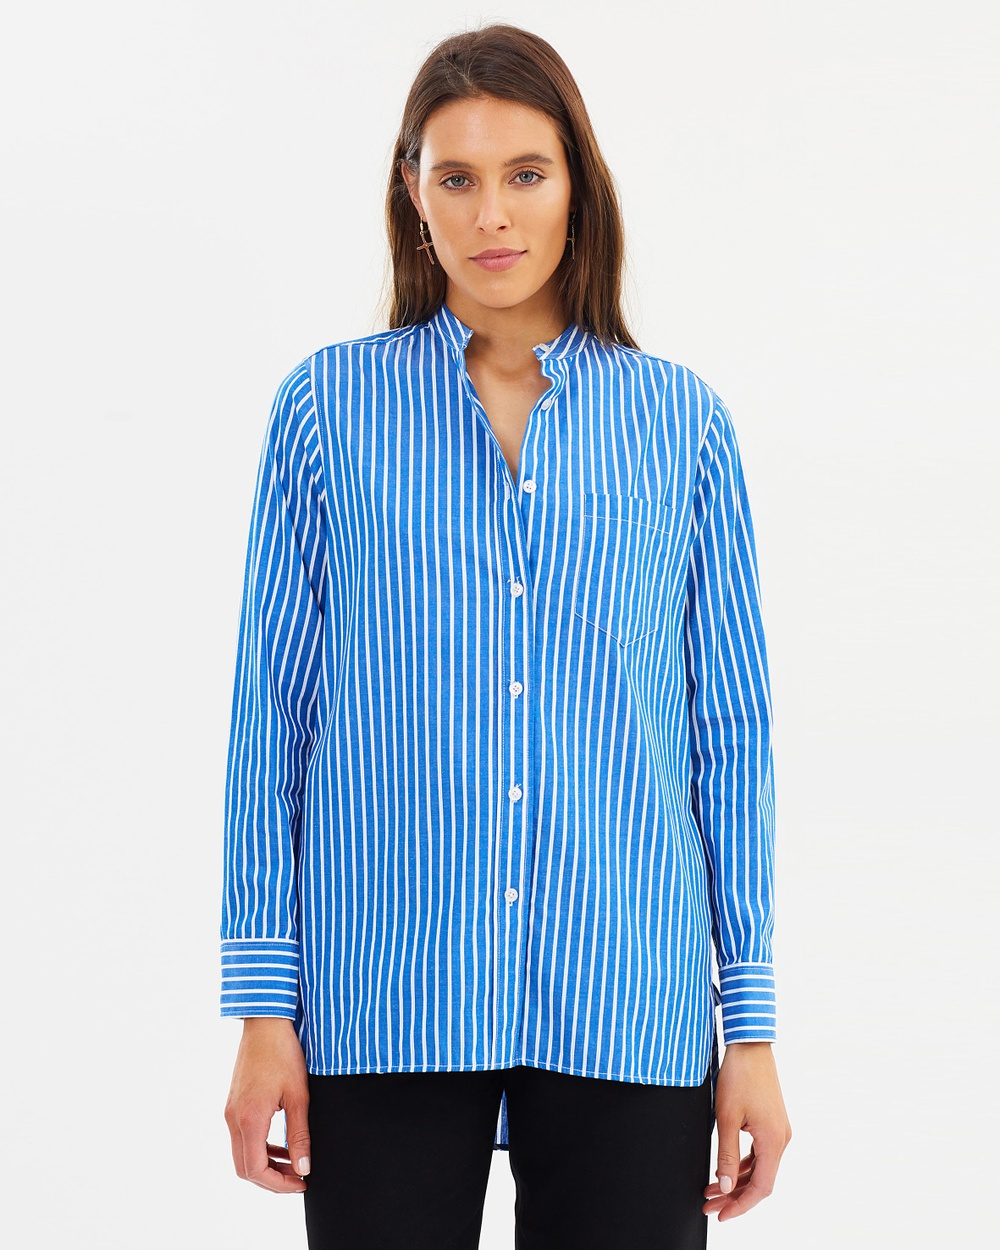 Incu Collection Mandarin Collar Shirt Tops Blue Stripe Mandarin Collar Shirt